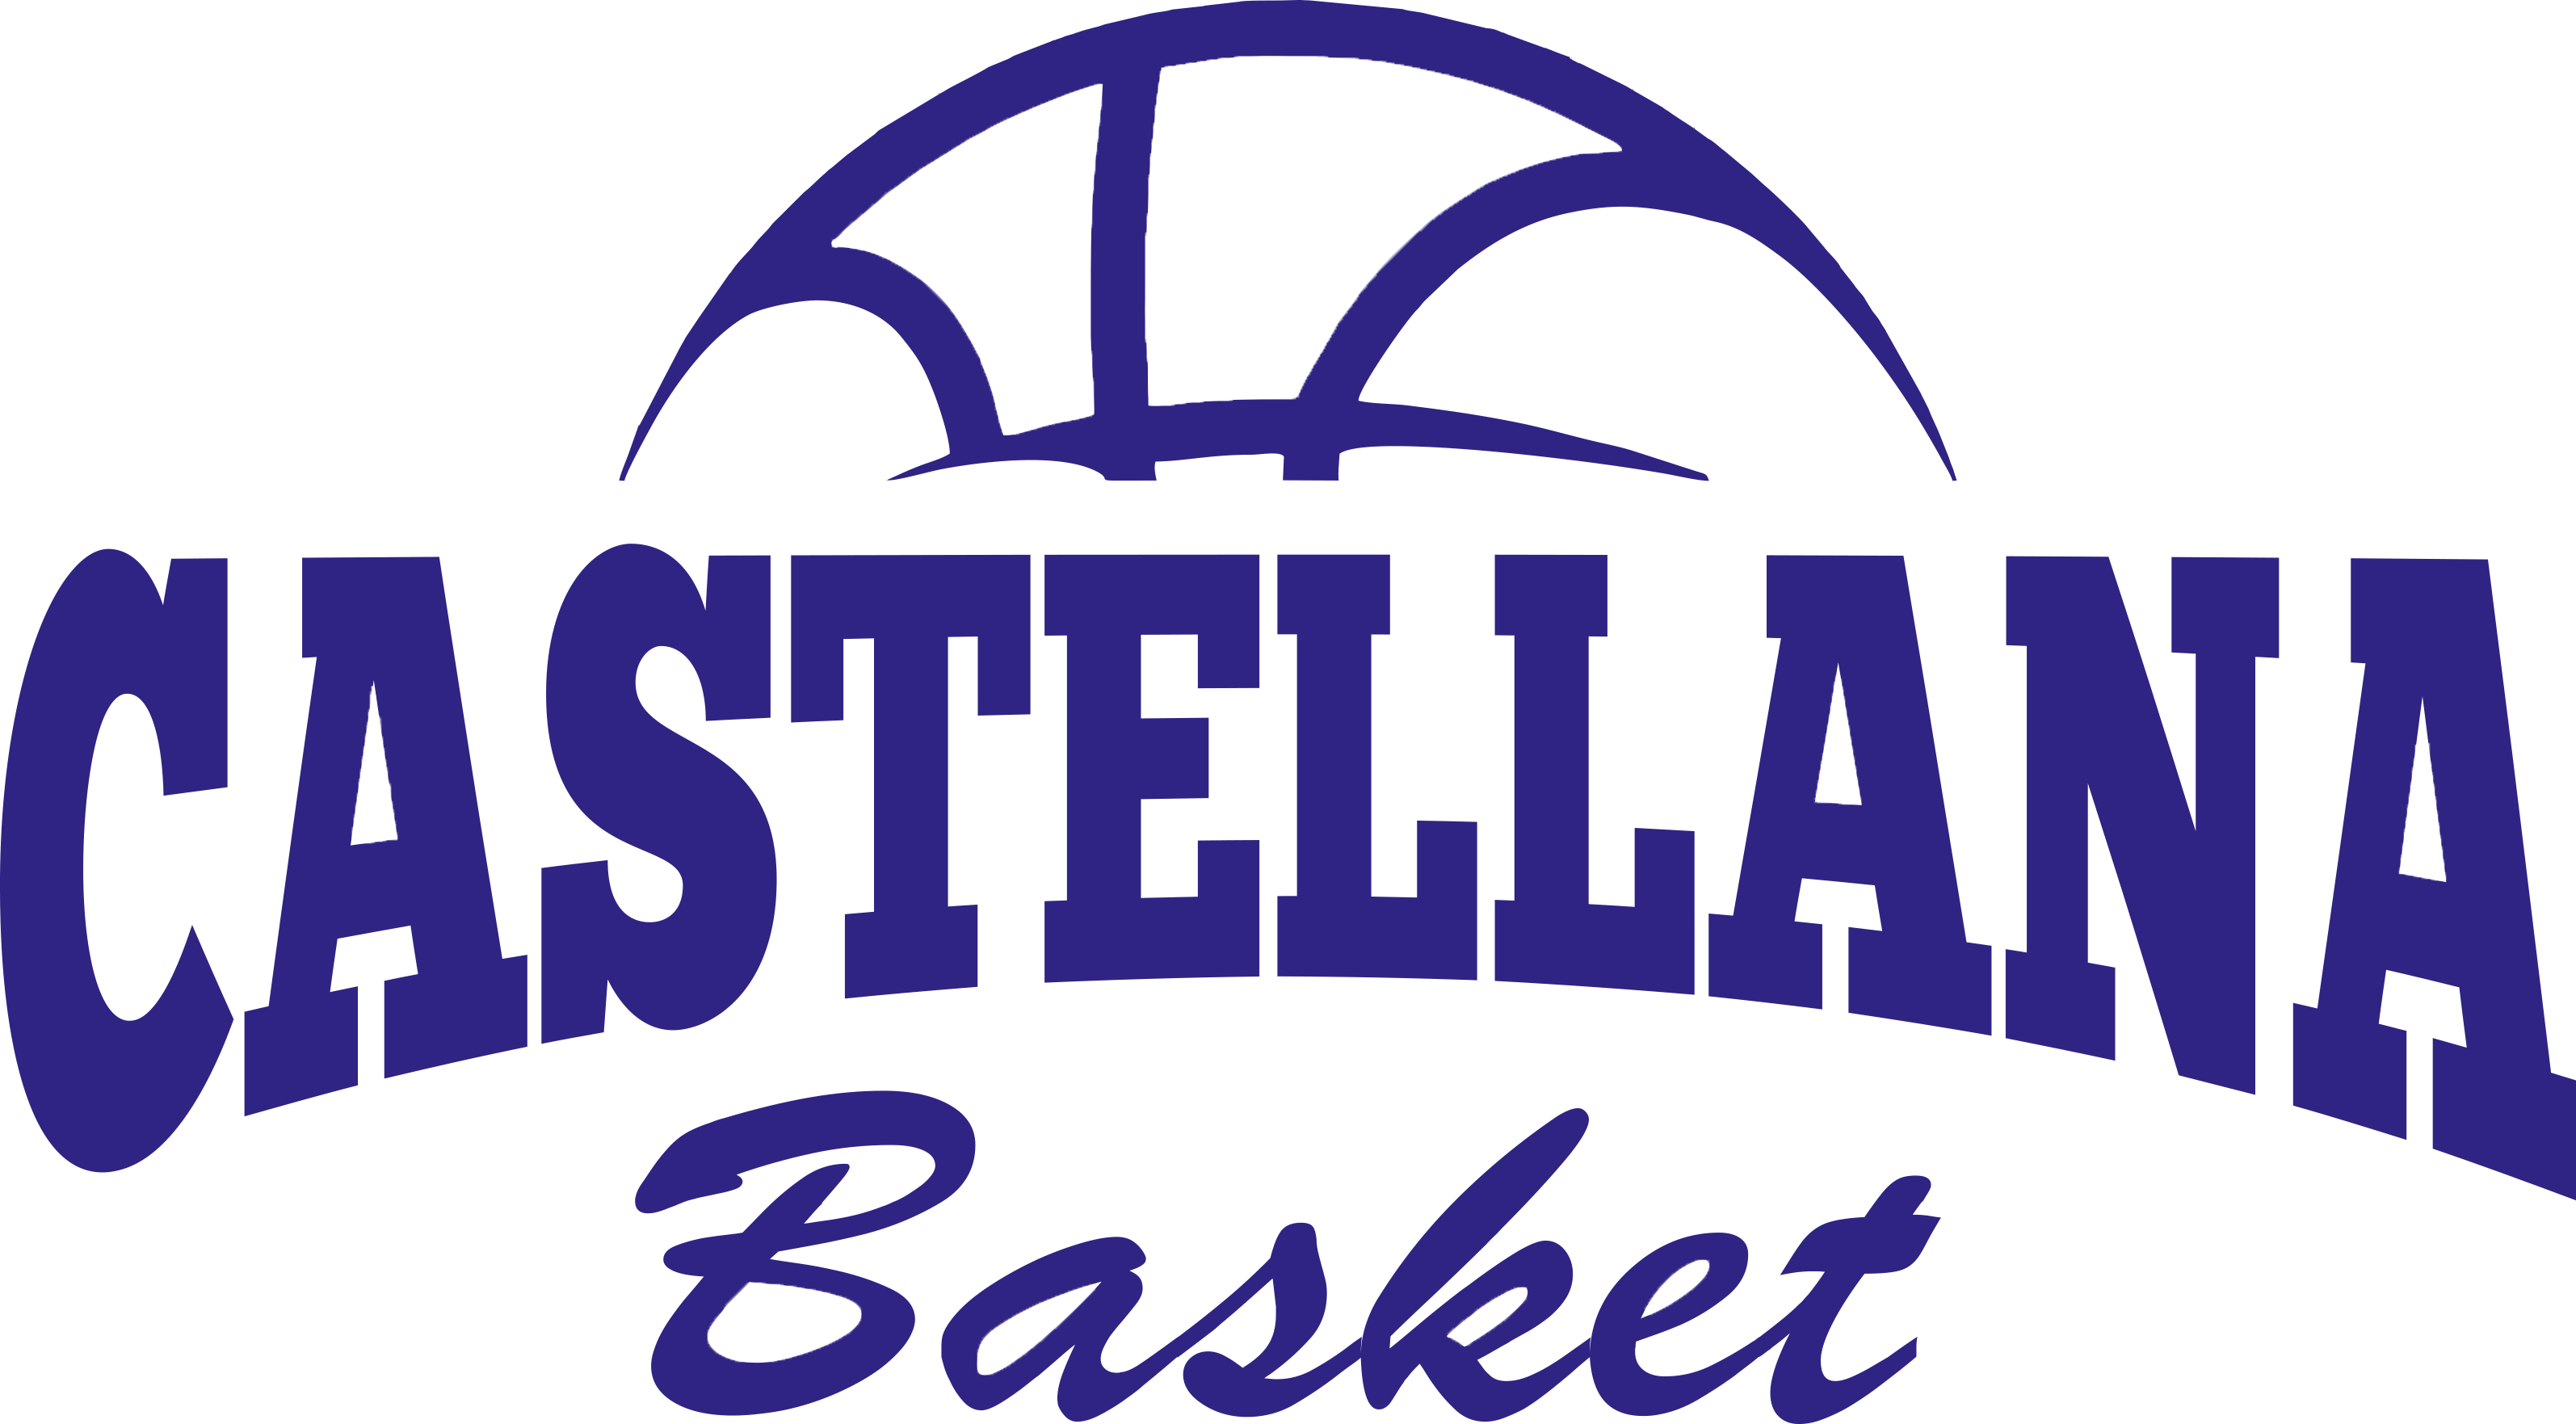 Castellana Basket